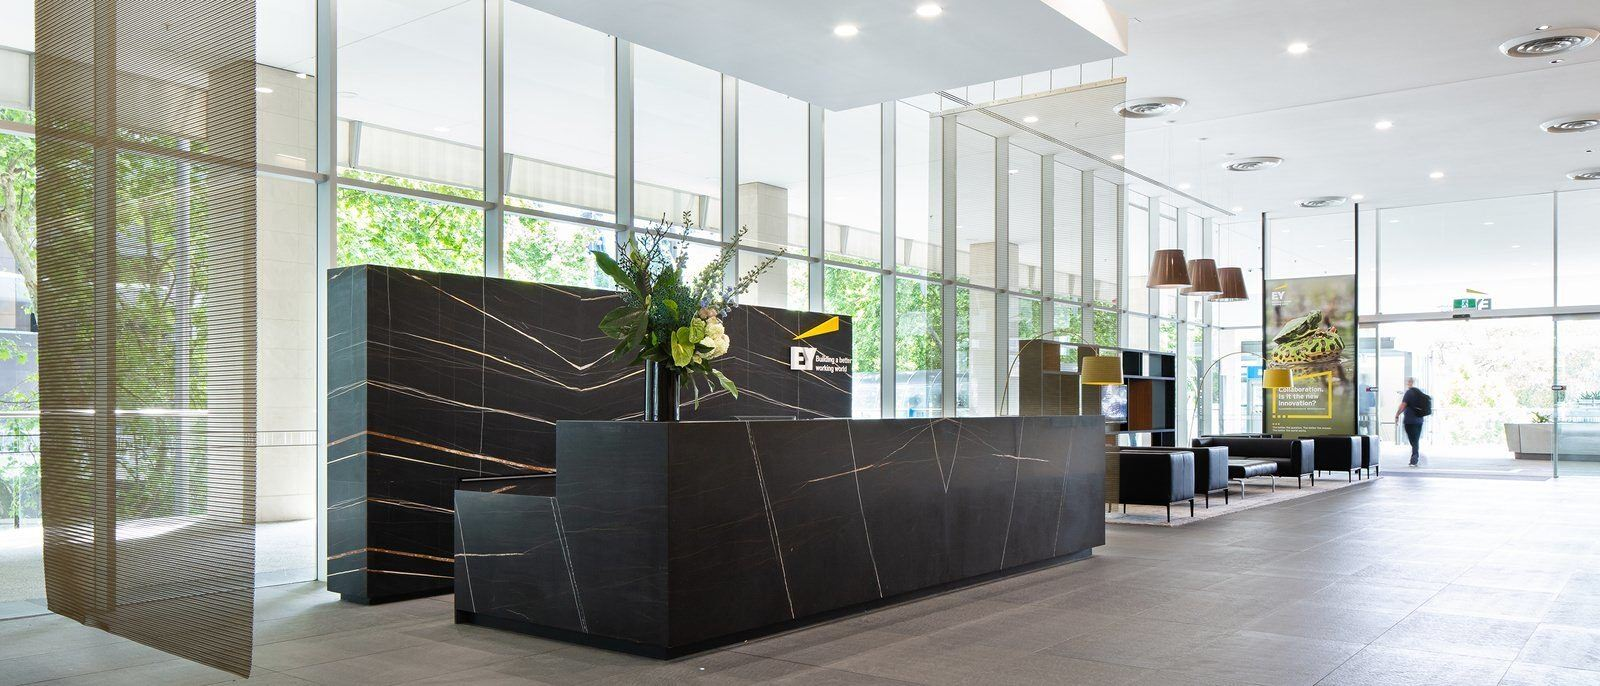 A lobby of a building that has a large black desk in the middle of it and a sitting area off to the side of it.